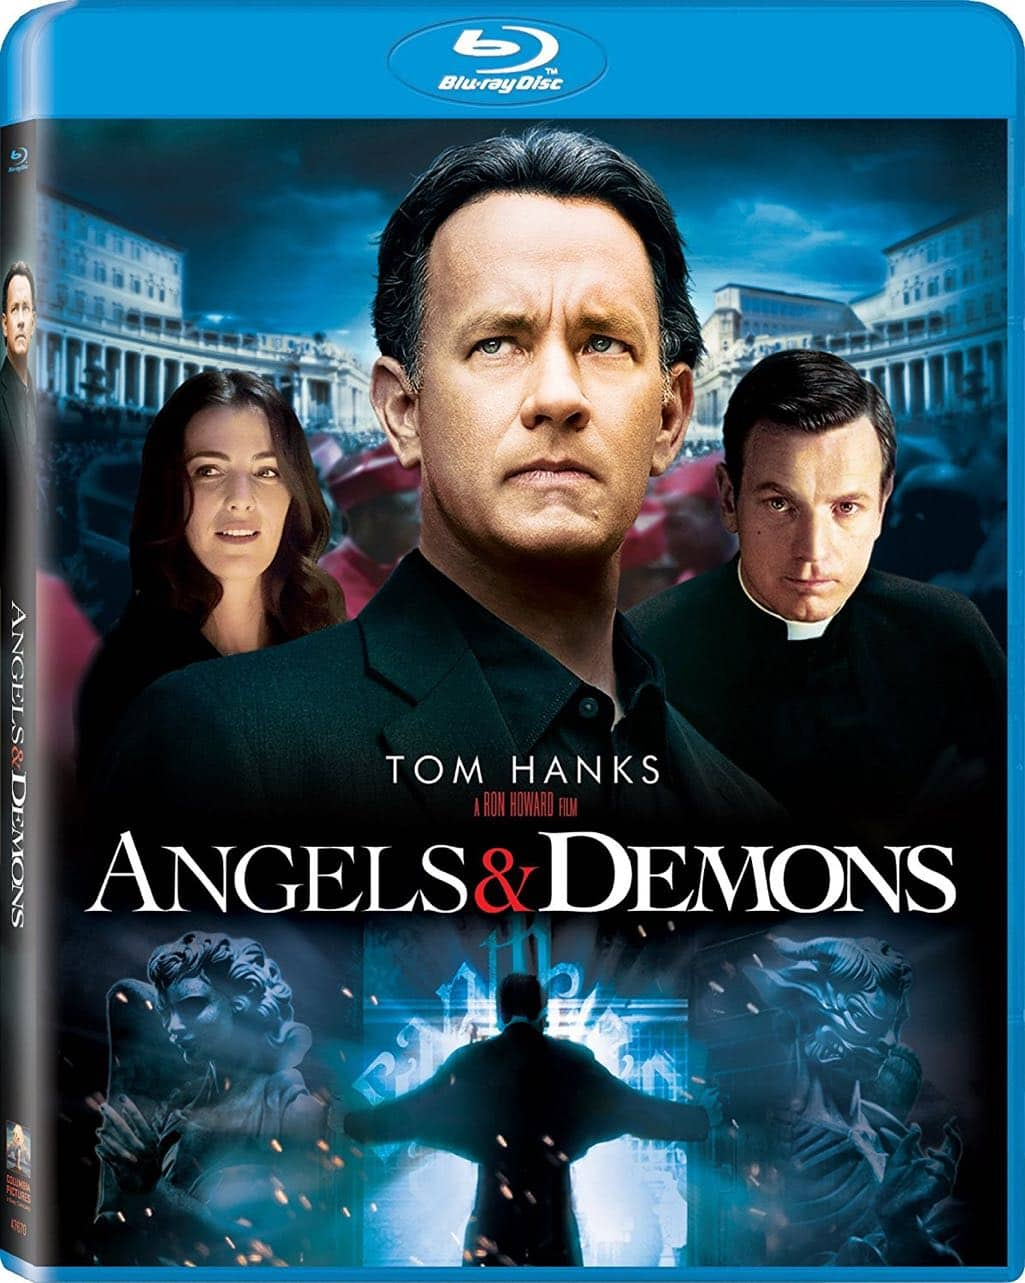 angels-and-demons-bluray